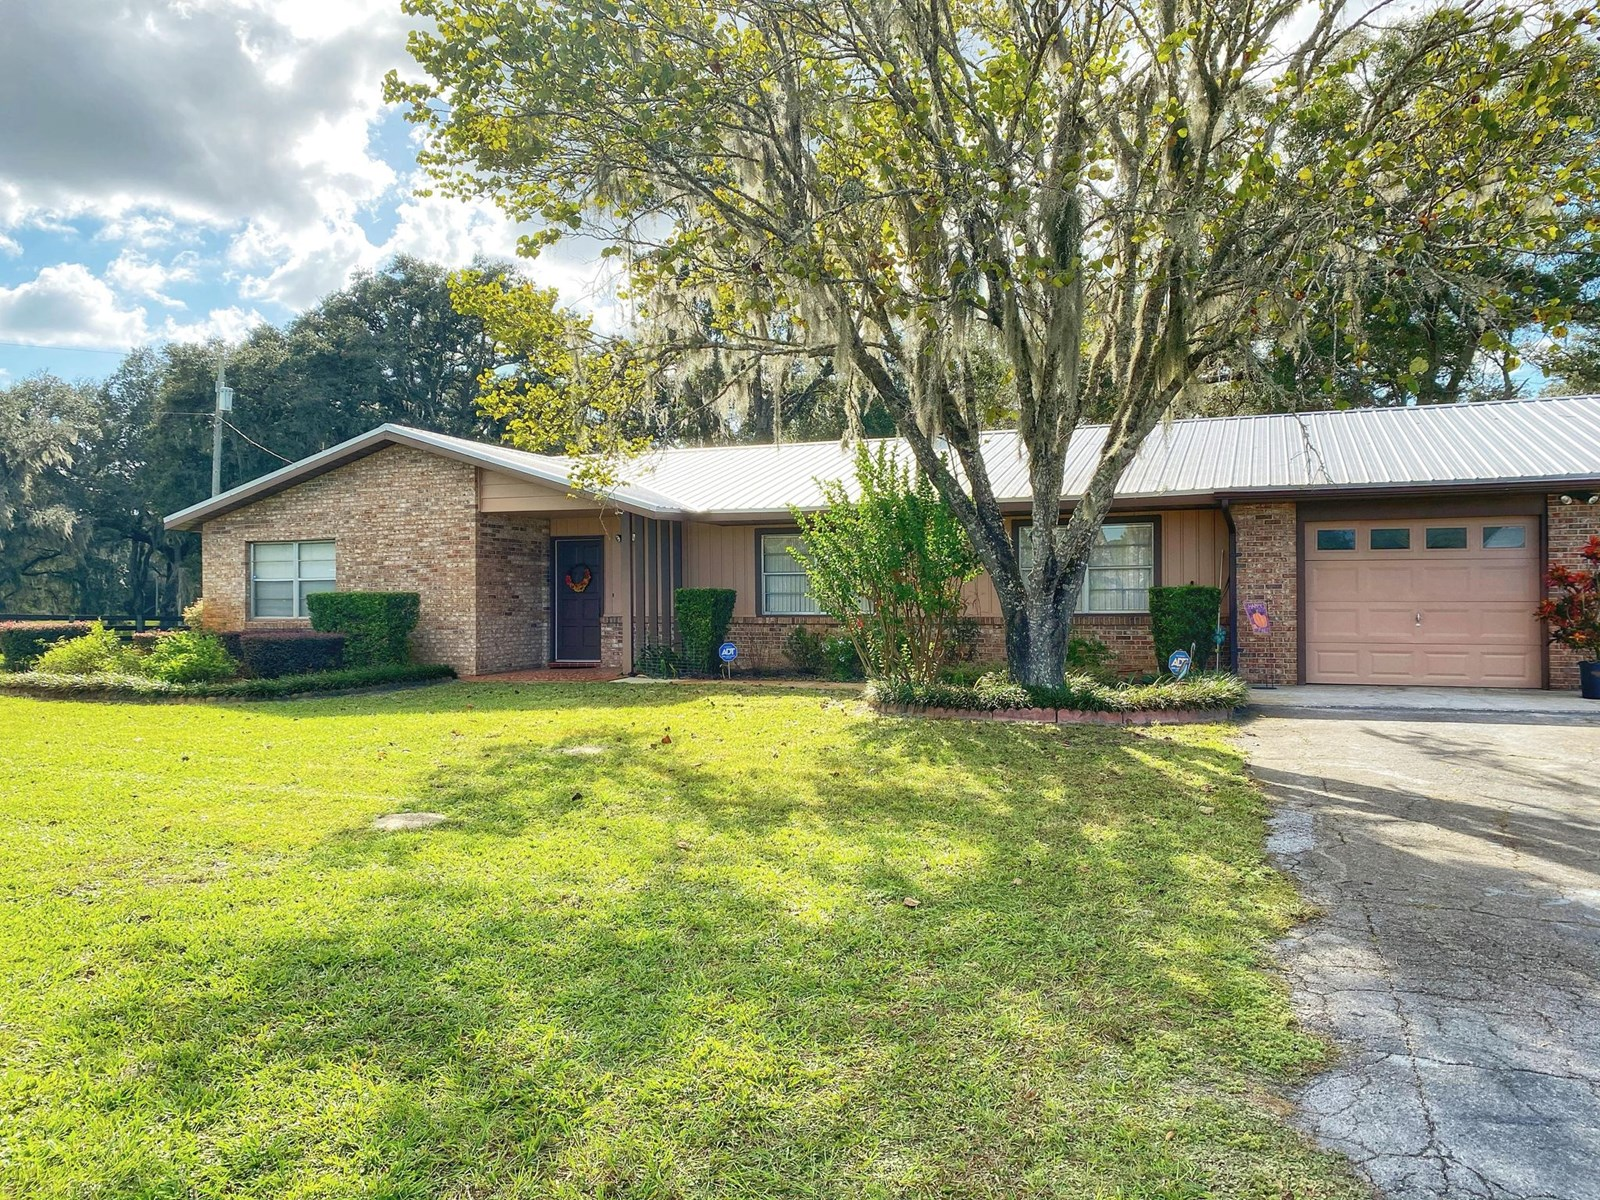 BEAUTIFUL COUNTRY HOME AND ACREAGE!